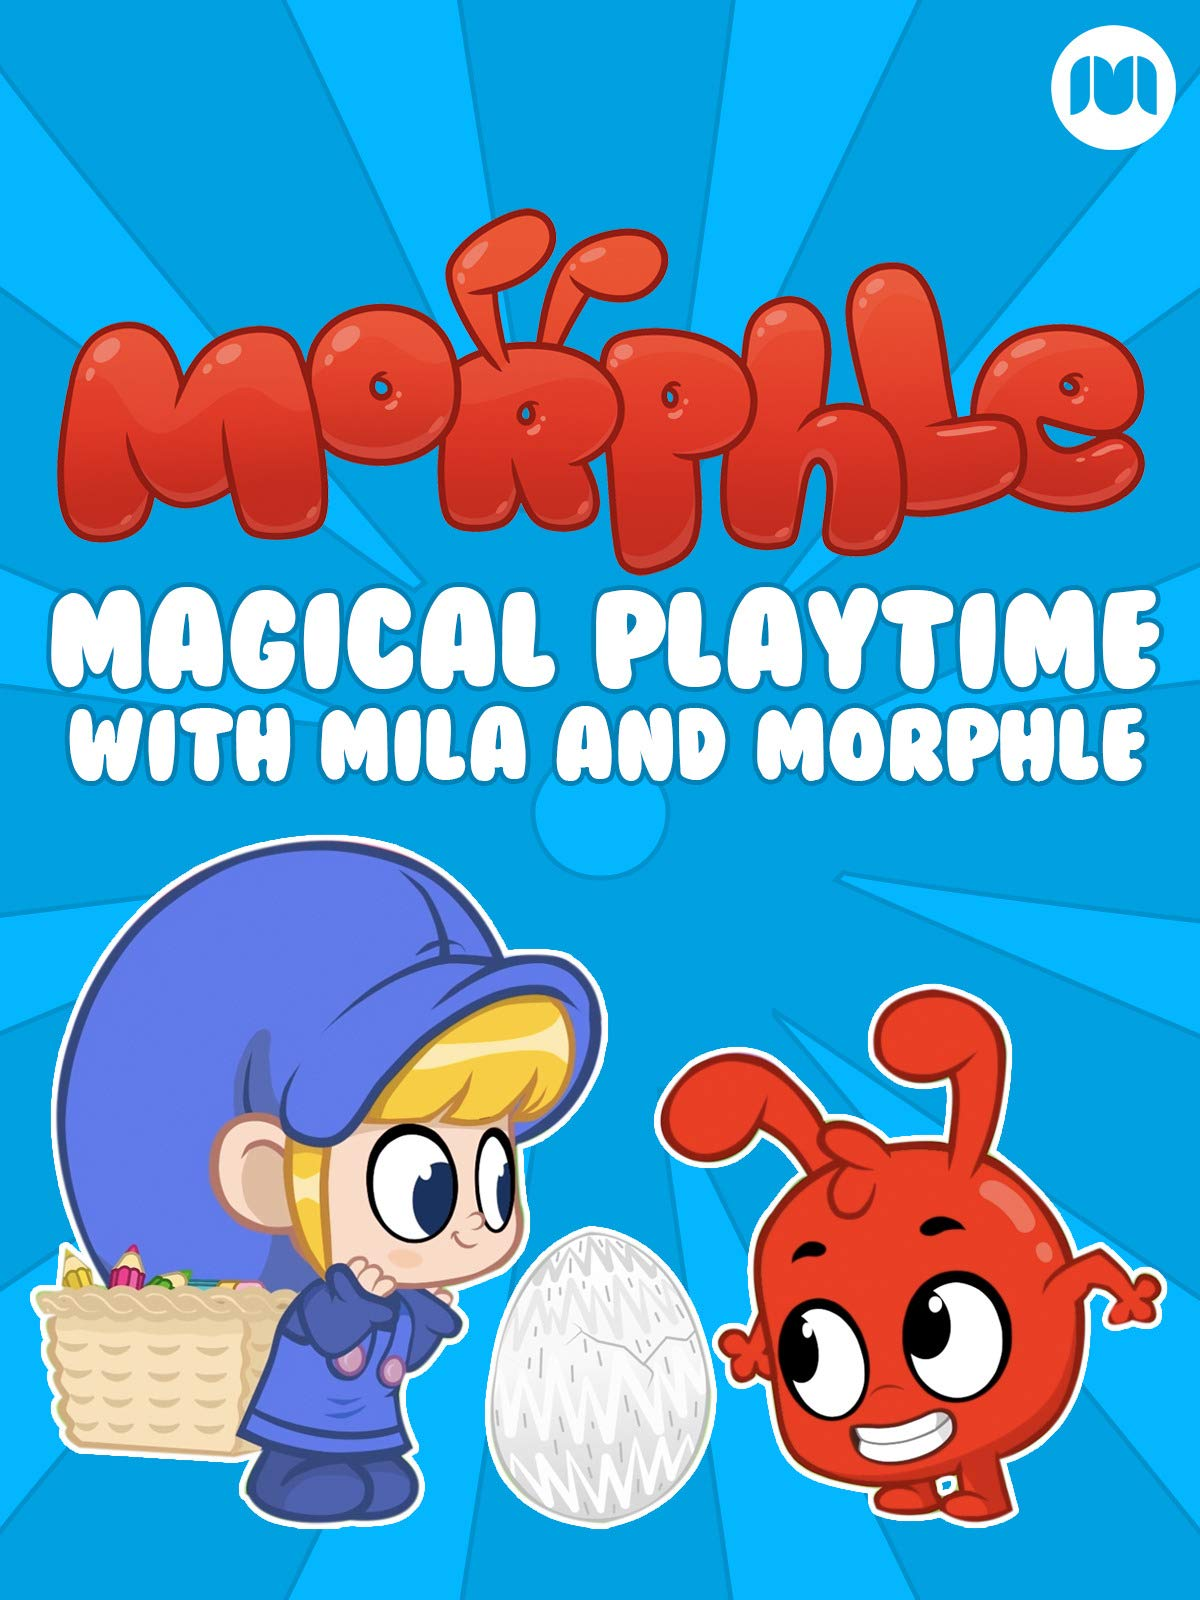 Magical Playtime with Mila and Morphle